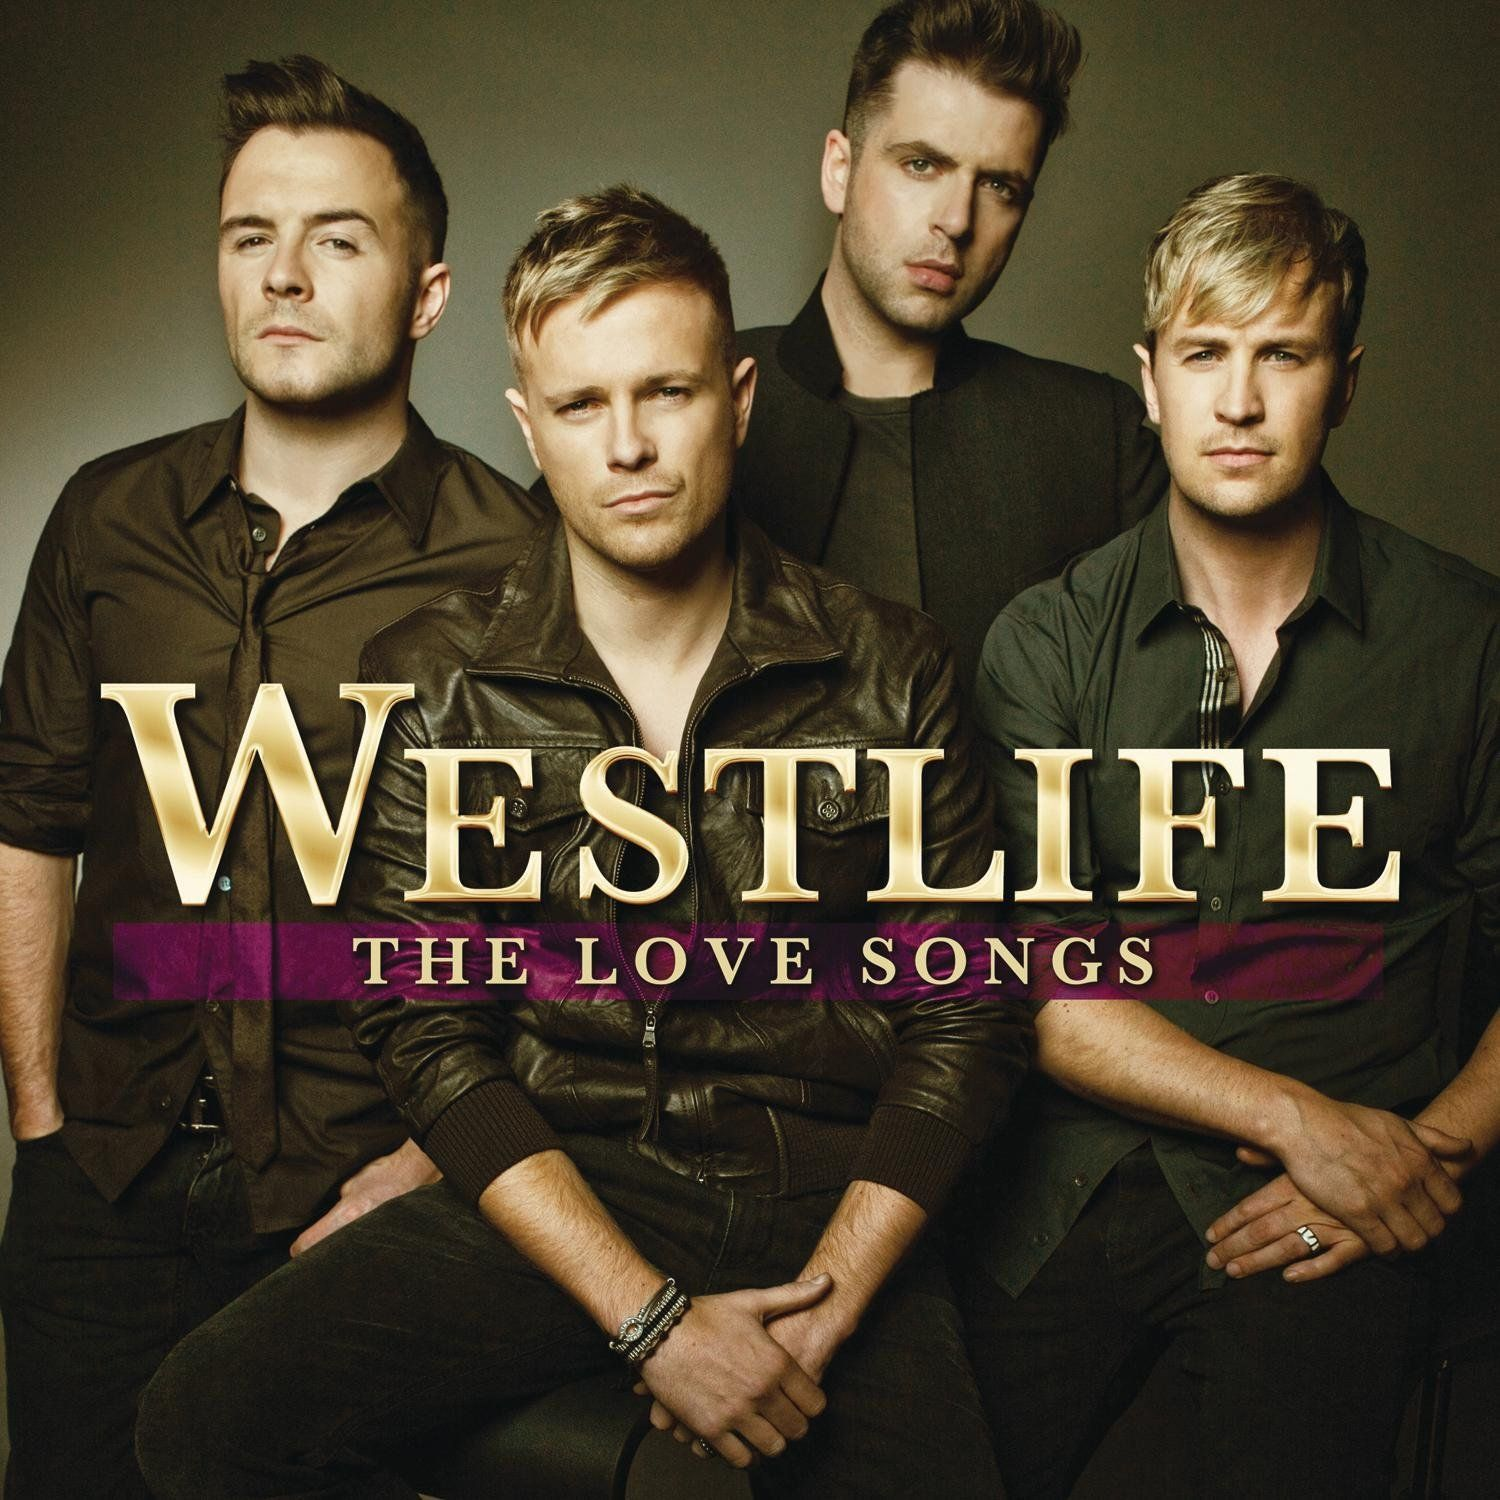 Westlife - The Love Songs album cover